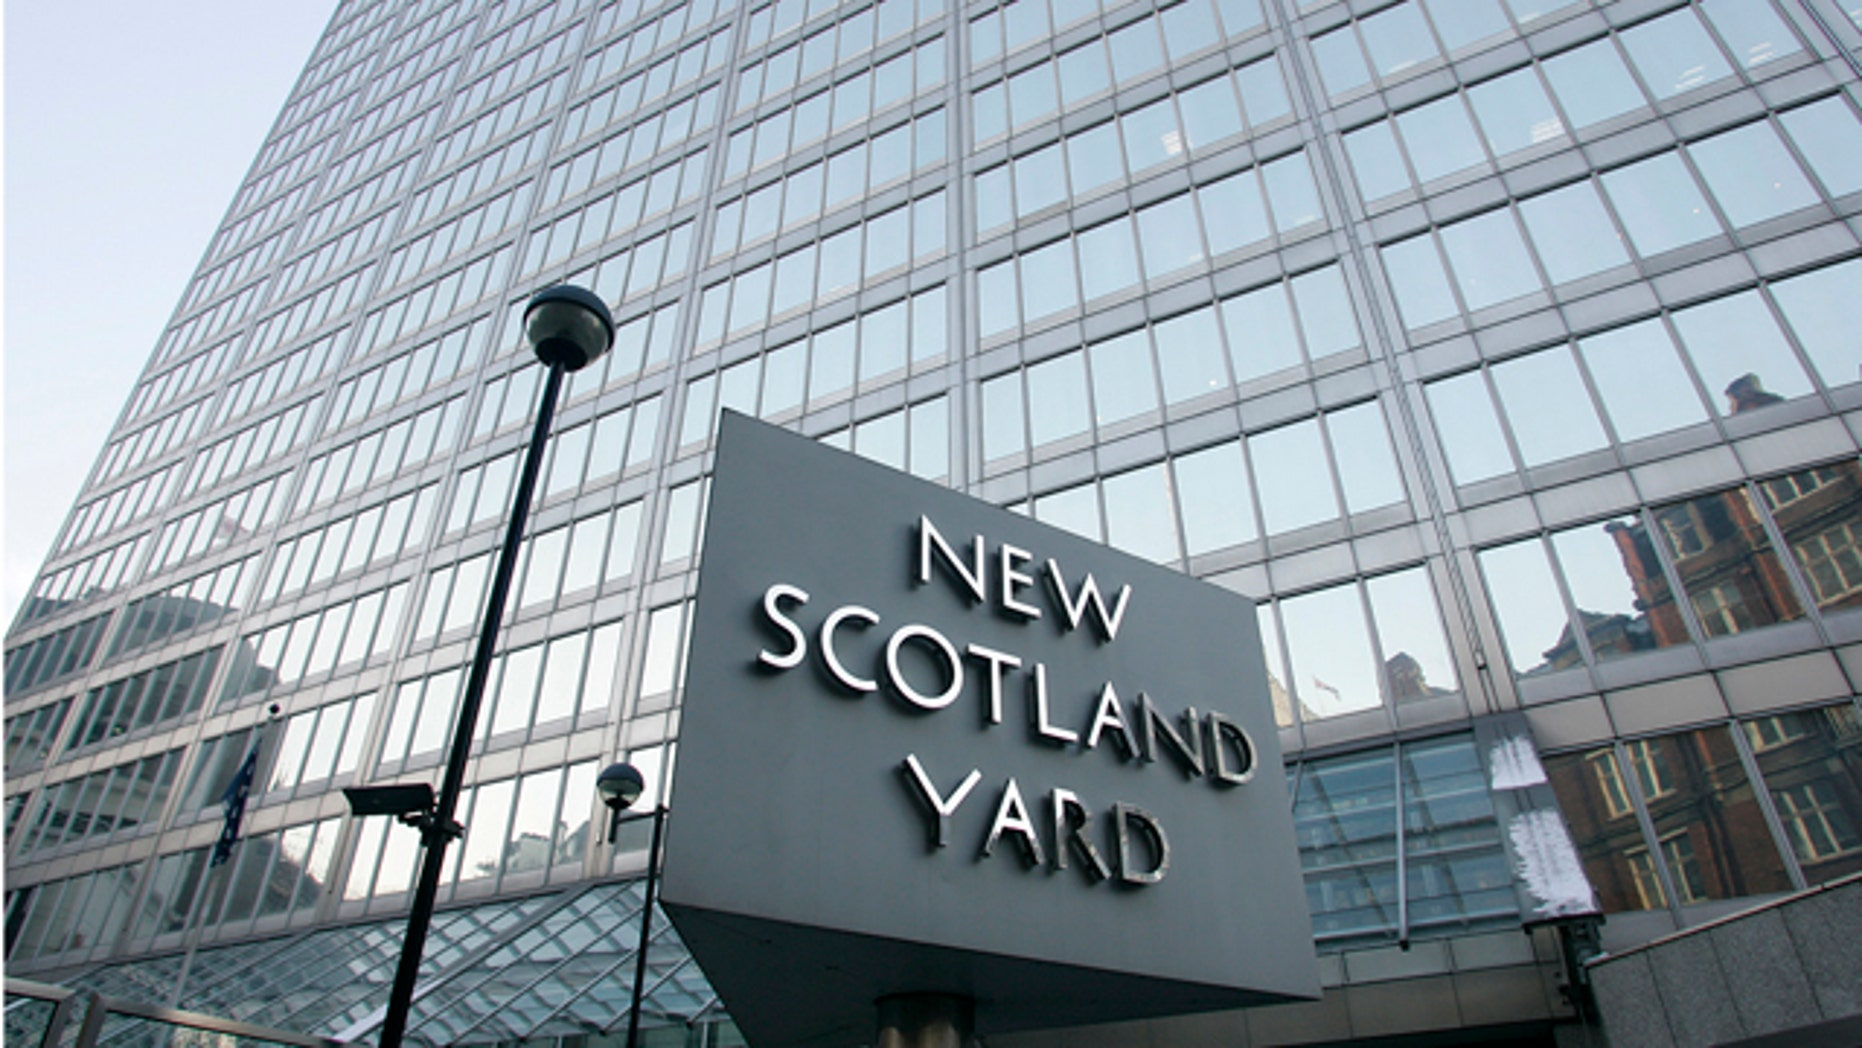 Dec. 20, 2010: British police on Monday arrested  a dozen men suspected of plotting a large-scale terror attack _ the biggest anti-terrorist sweep since April 2009, when 12 men were detained over an alleged al-Qaida bomb plot in the northern city of Manchester.